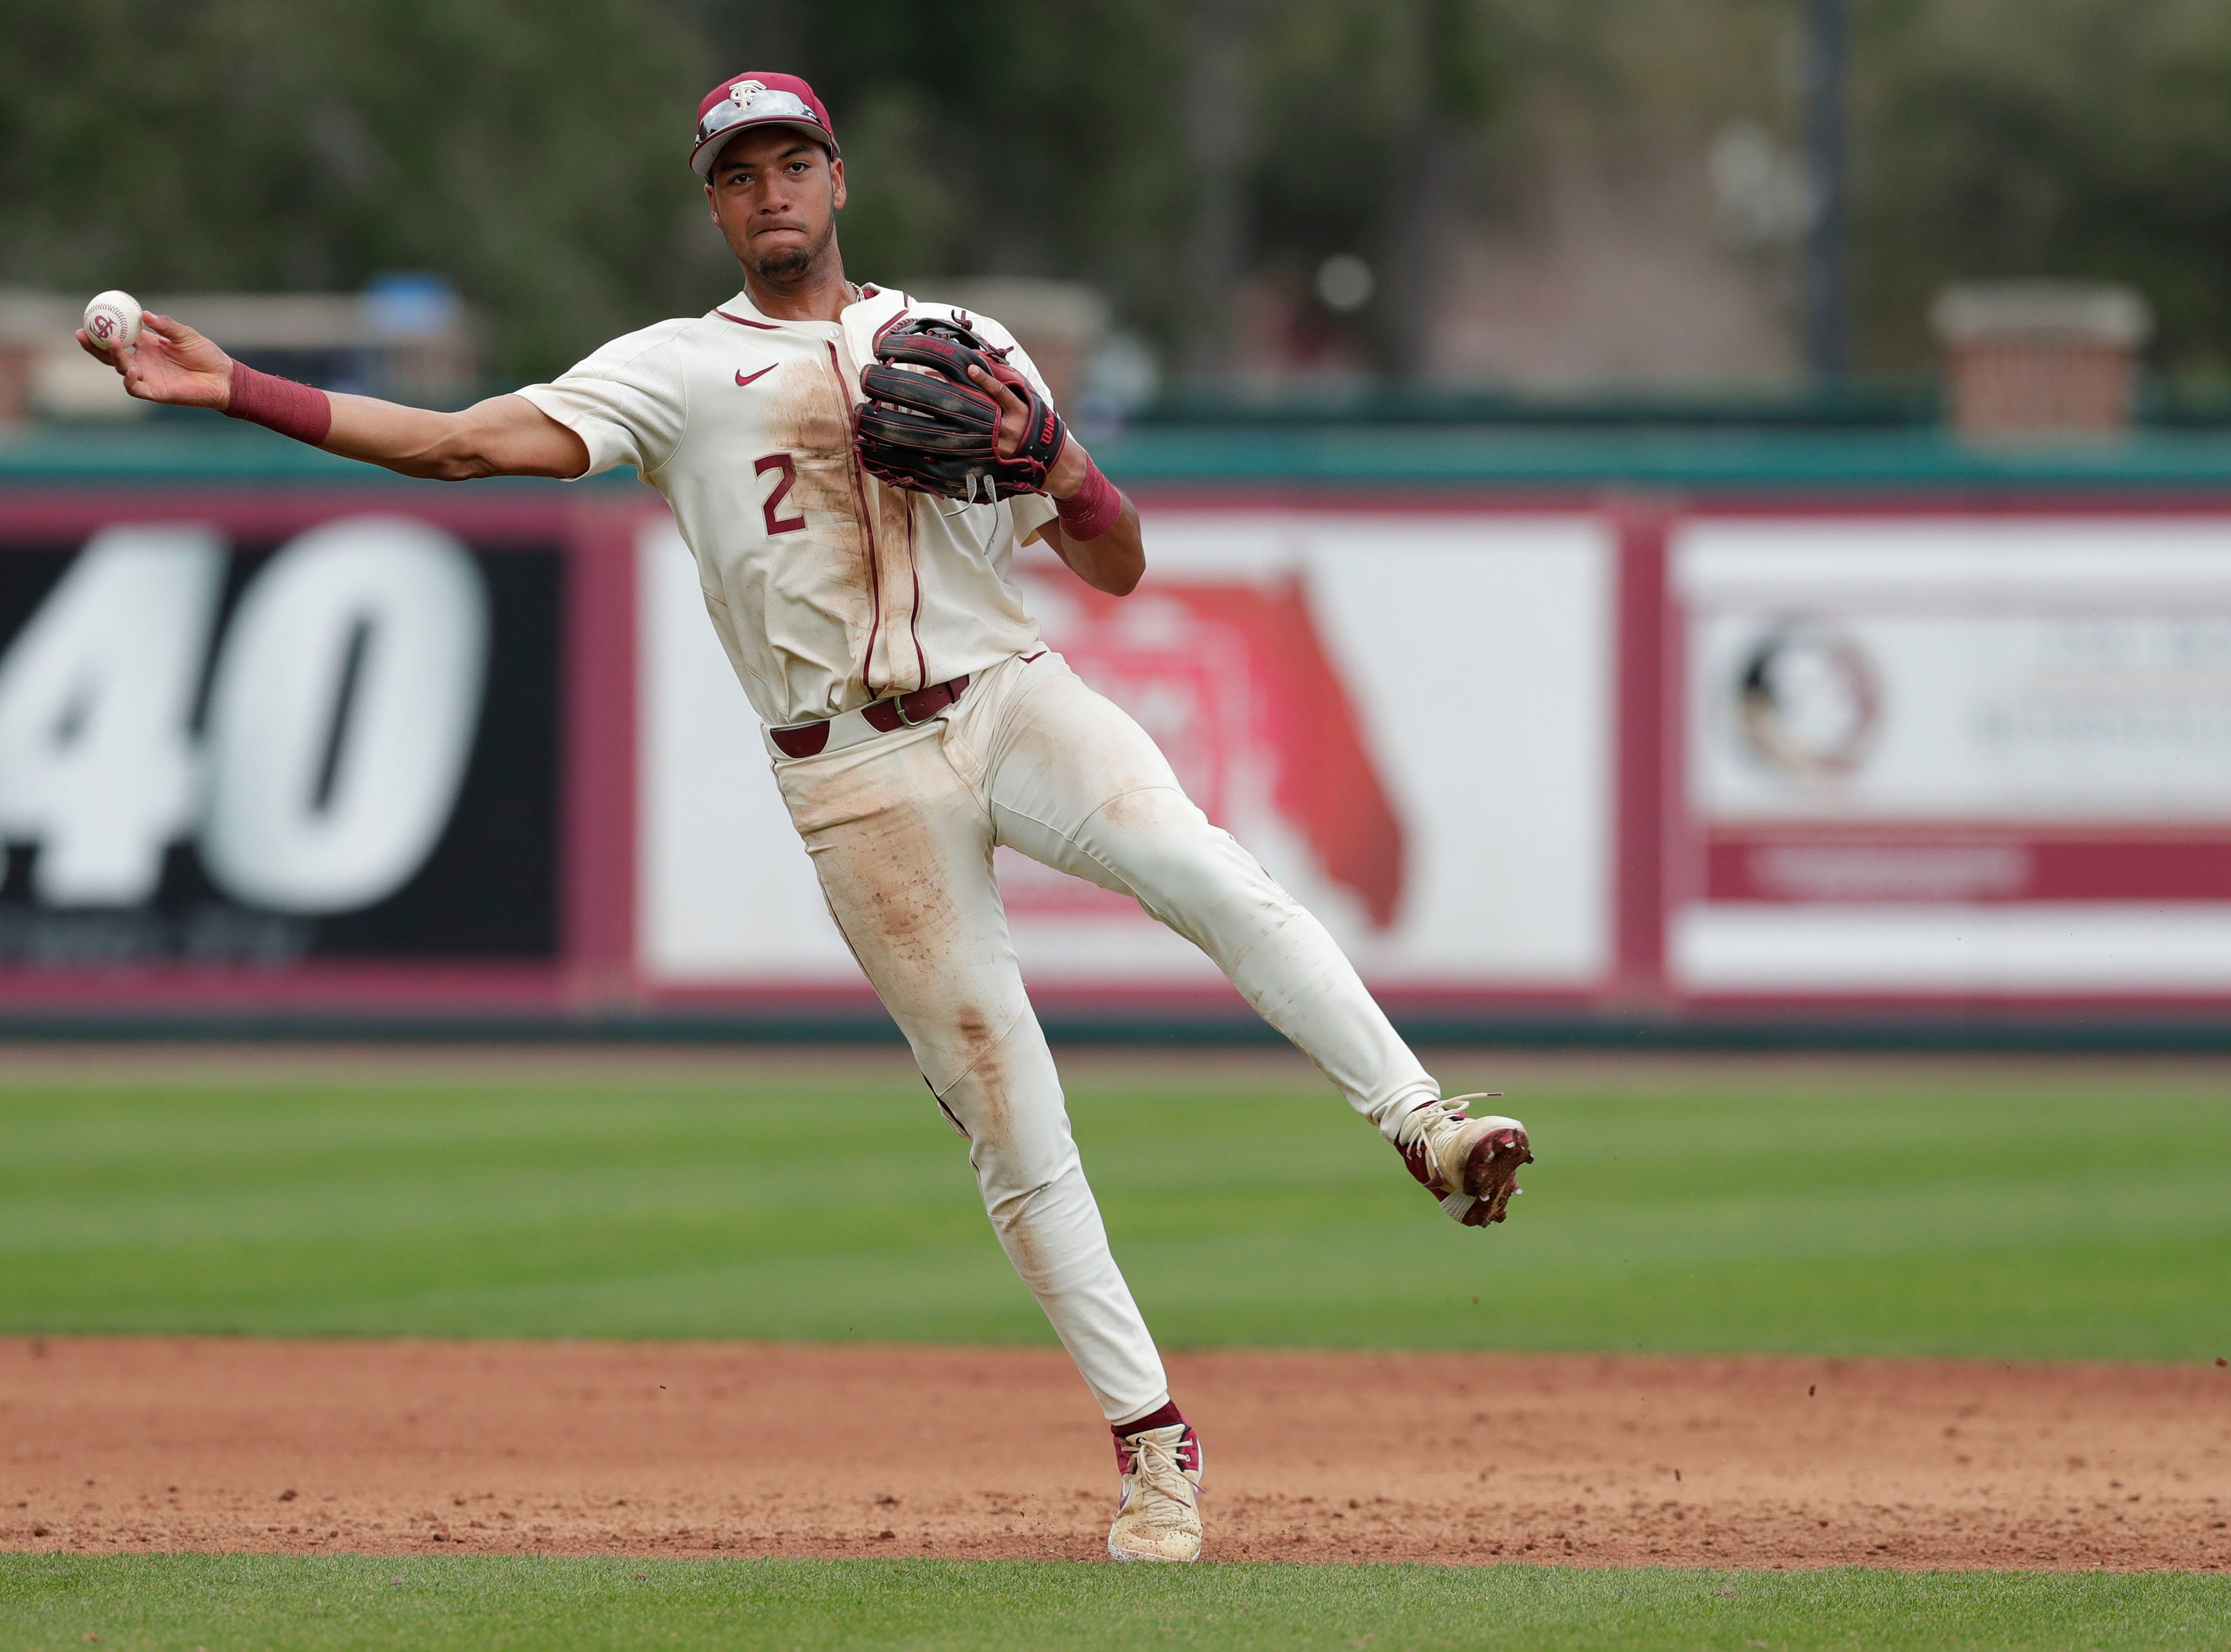 Florida State Seminoles infielder Nander De Sedas (2) picks up a ground ball and throws to his teammate to get the out at first. The Florida State Seminoles host the Maine Black Bears for the second game of the series, Saturday Feb. 16, 2019.